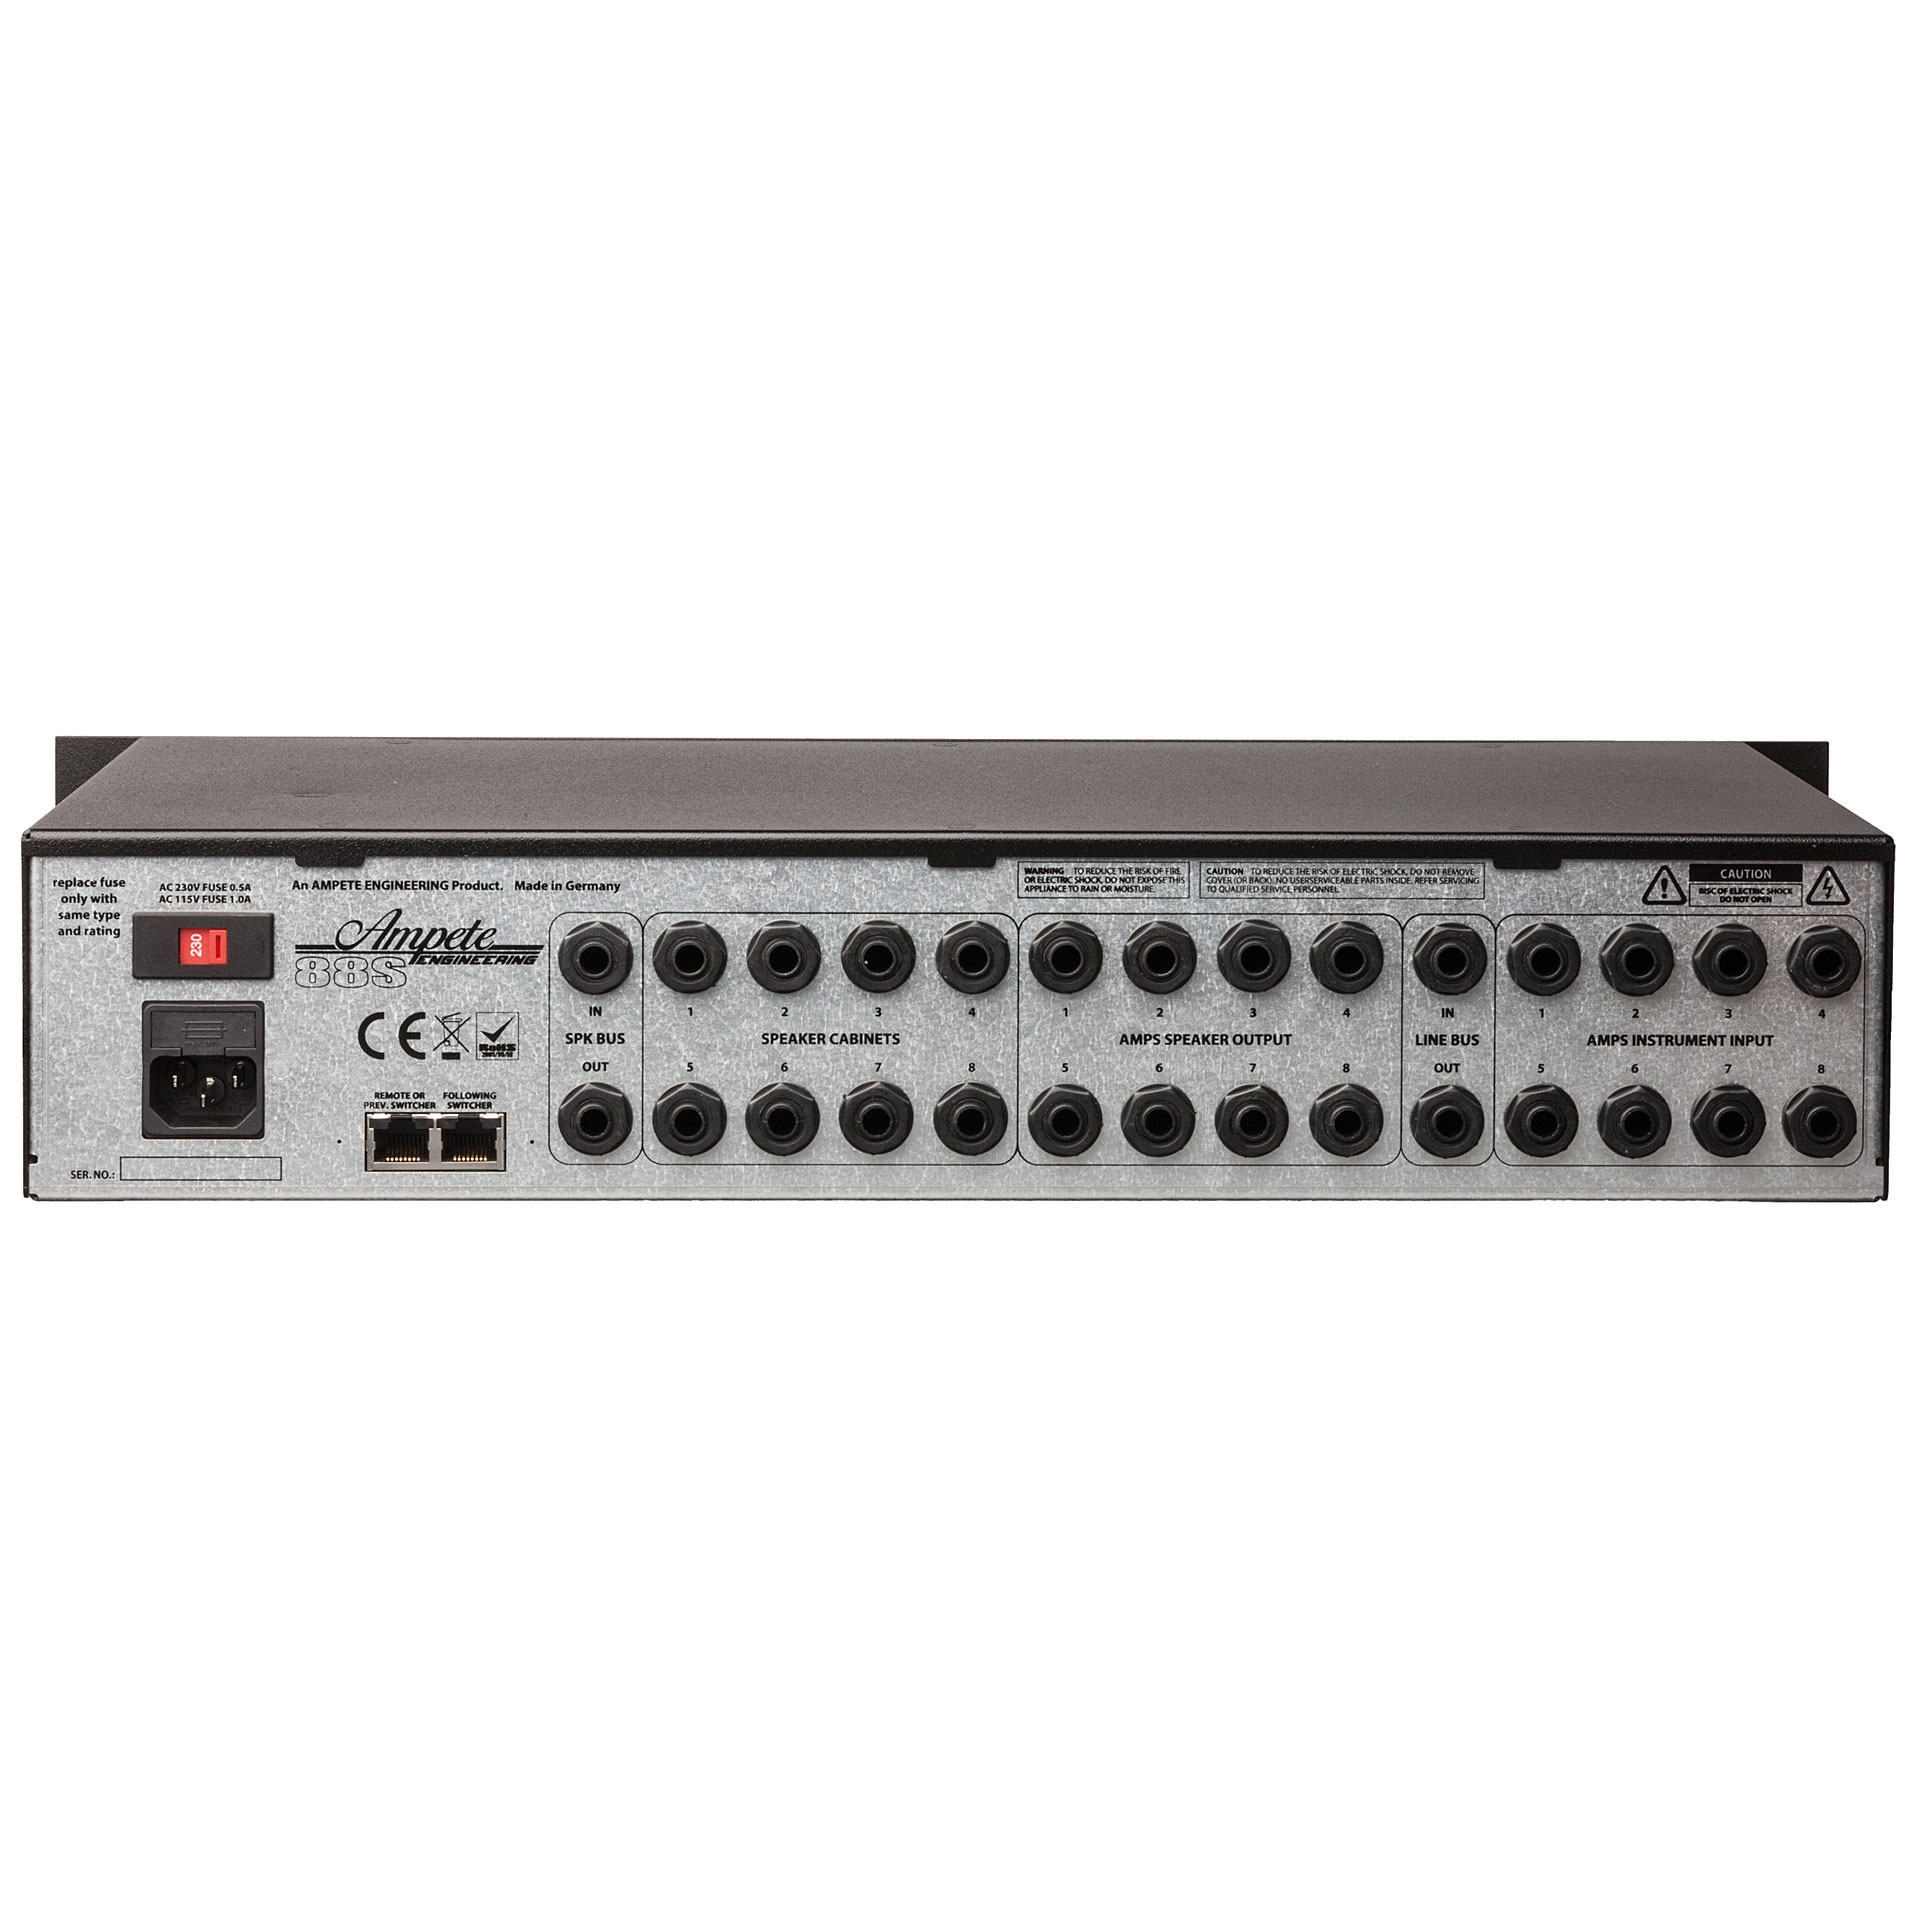 ... Little Helper Ampete 88S Studio Amp/Cabinet Switching System (2)